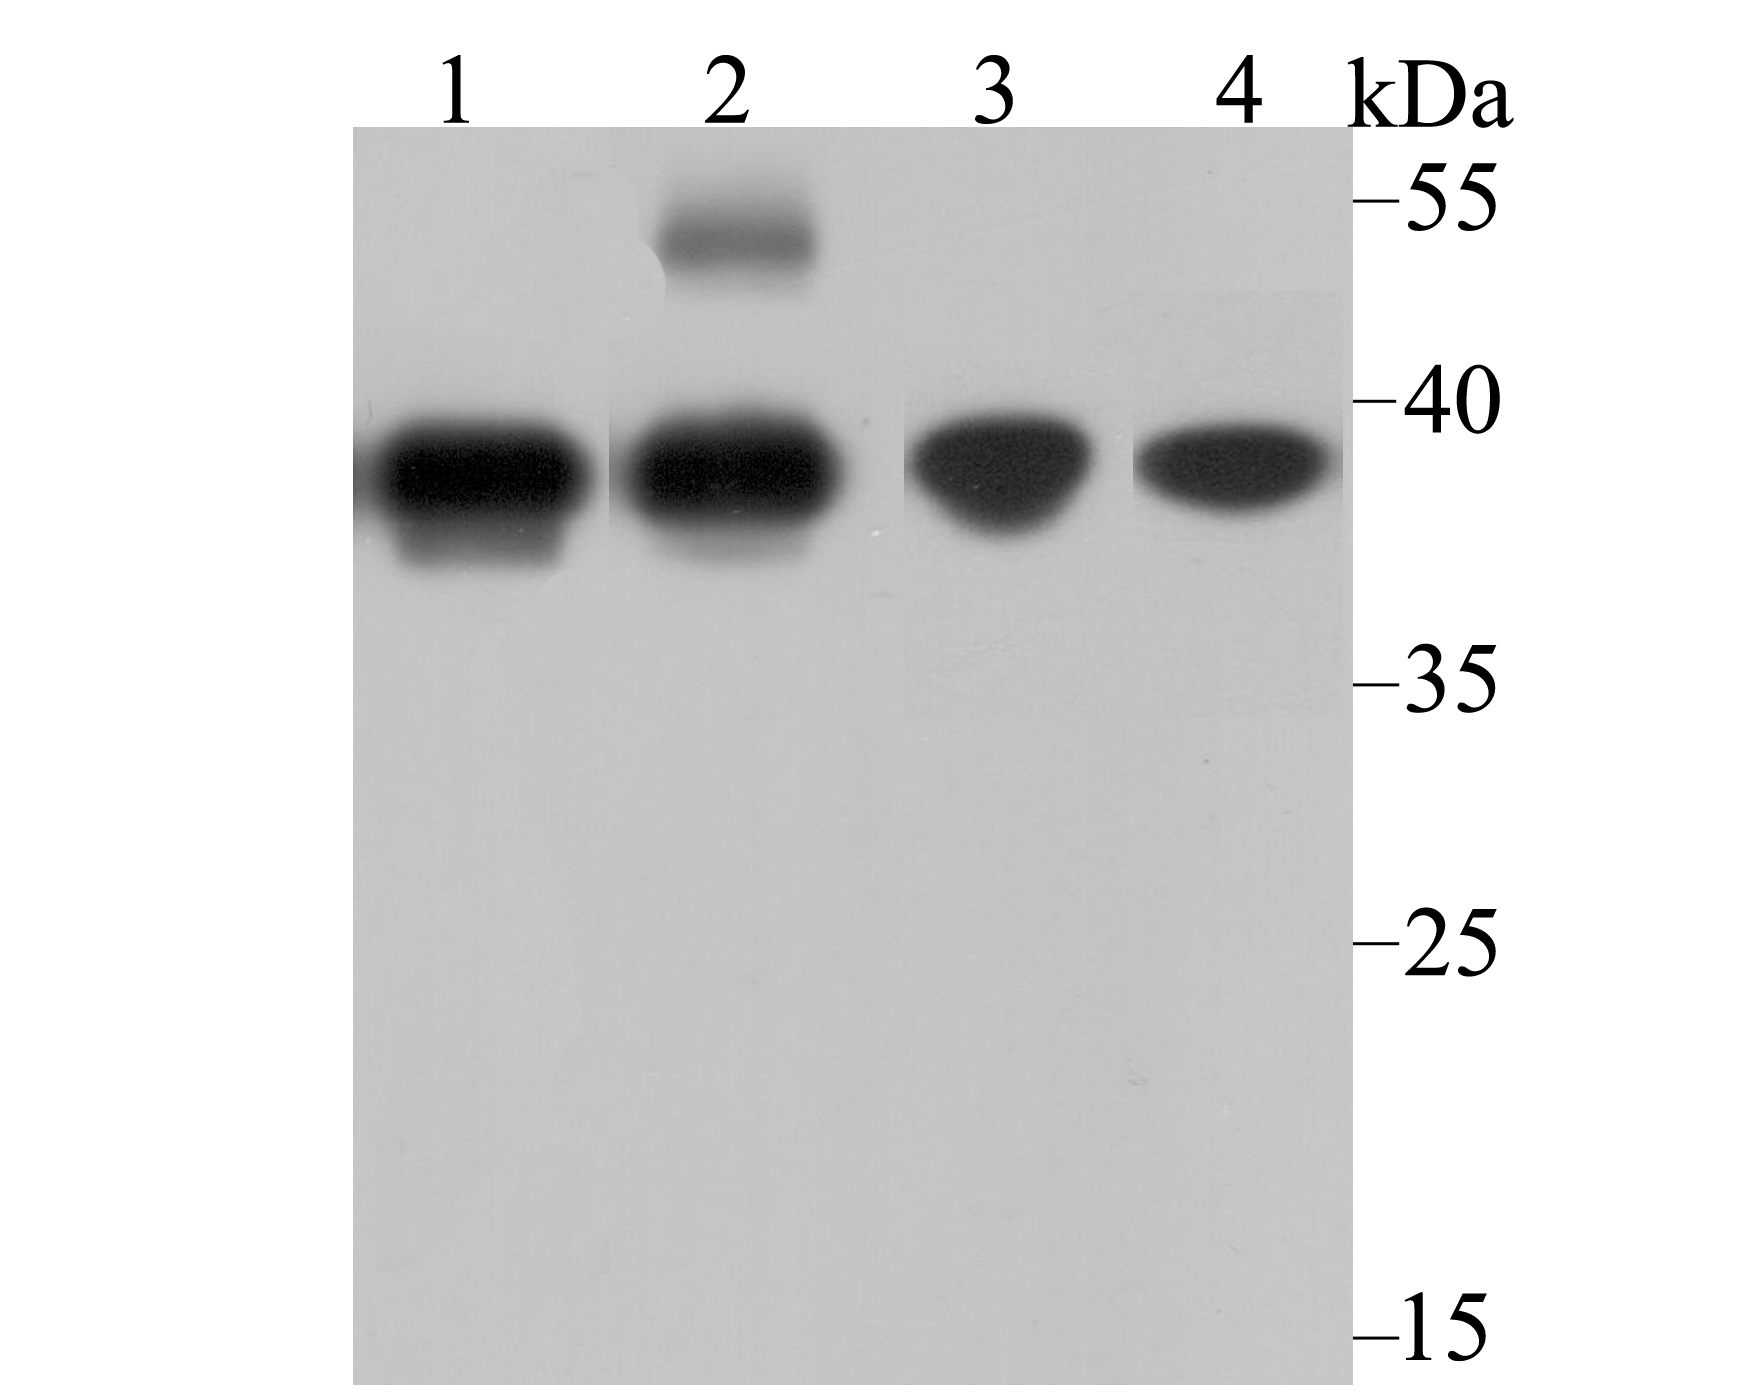 Western blot analysis of APE1 on different lysates using anti-APE1 antibody at 1/1,000 dilution.<br />   Positive control:<br />   Lane 1: HL-60 <br />   Lane 2: Human skin tissue <br />   Lane 3: MCF-7 <br />   Lane 4: Mouse placenta tissue